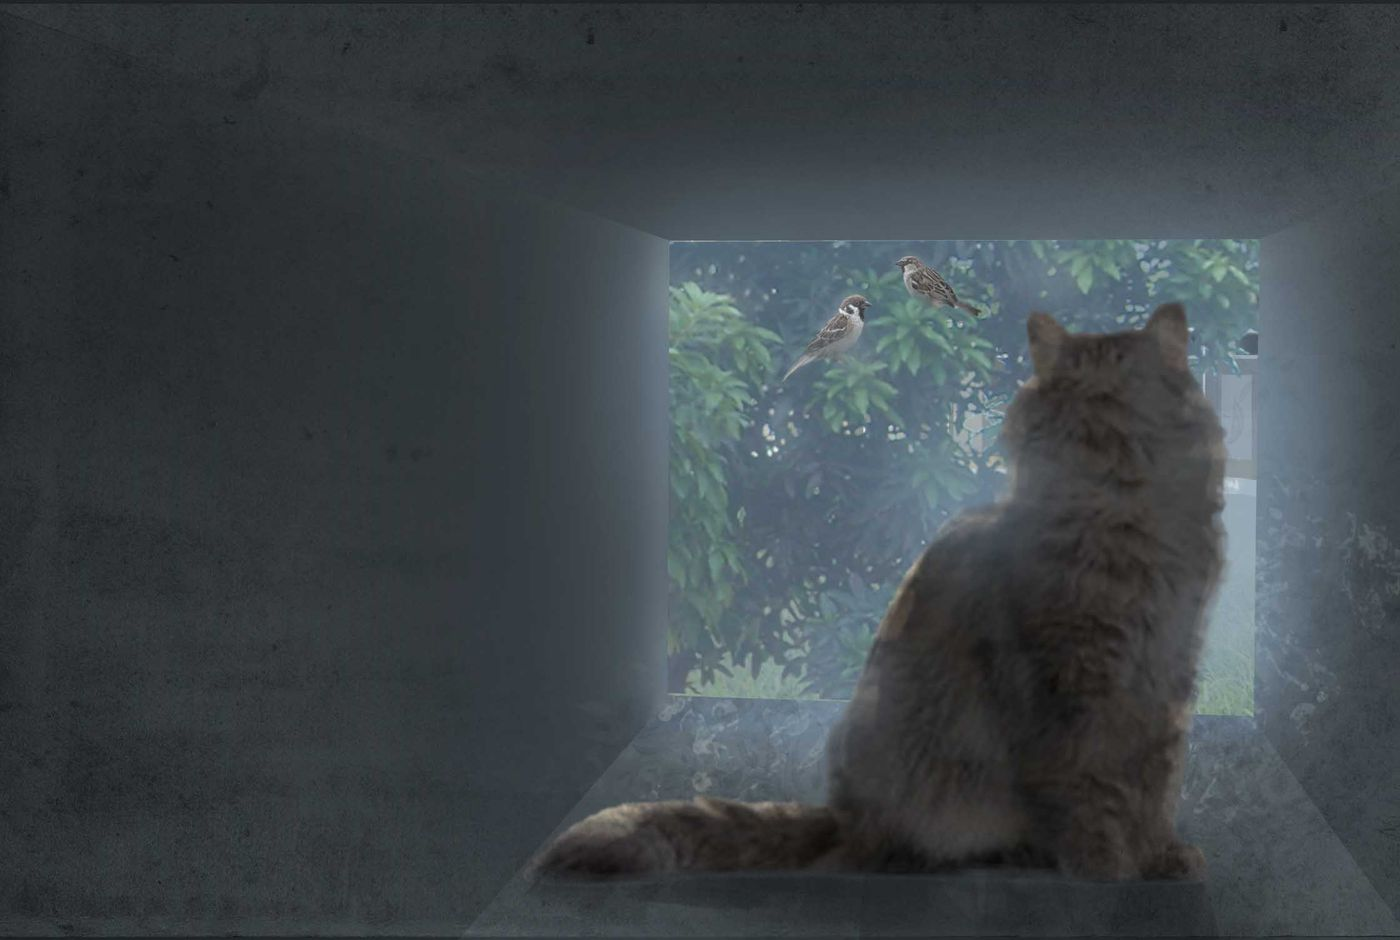 View%20from%20cattery%20tunnel%20out%20to%20courtyard%20version%202 Stephennjoto